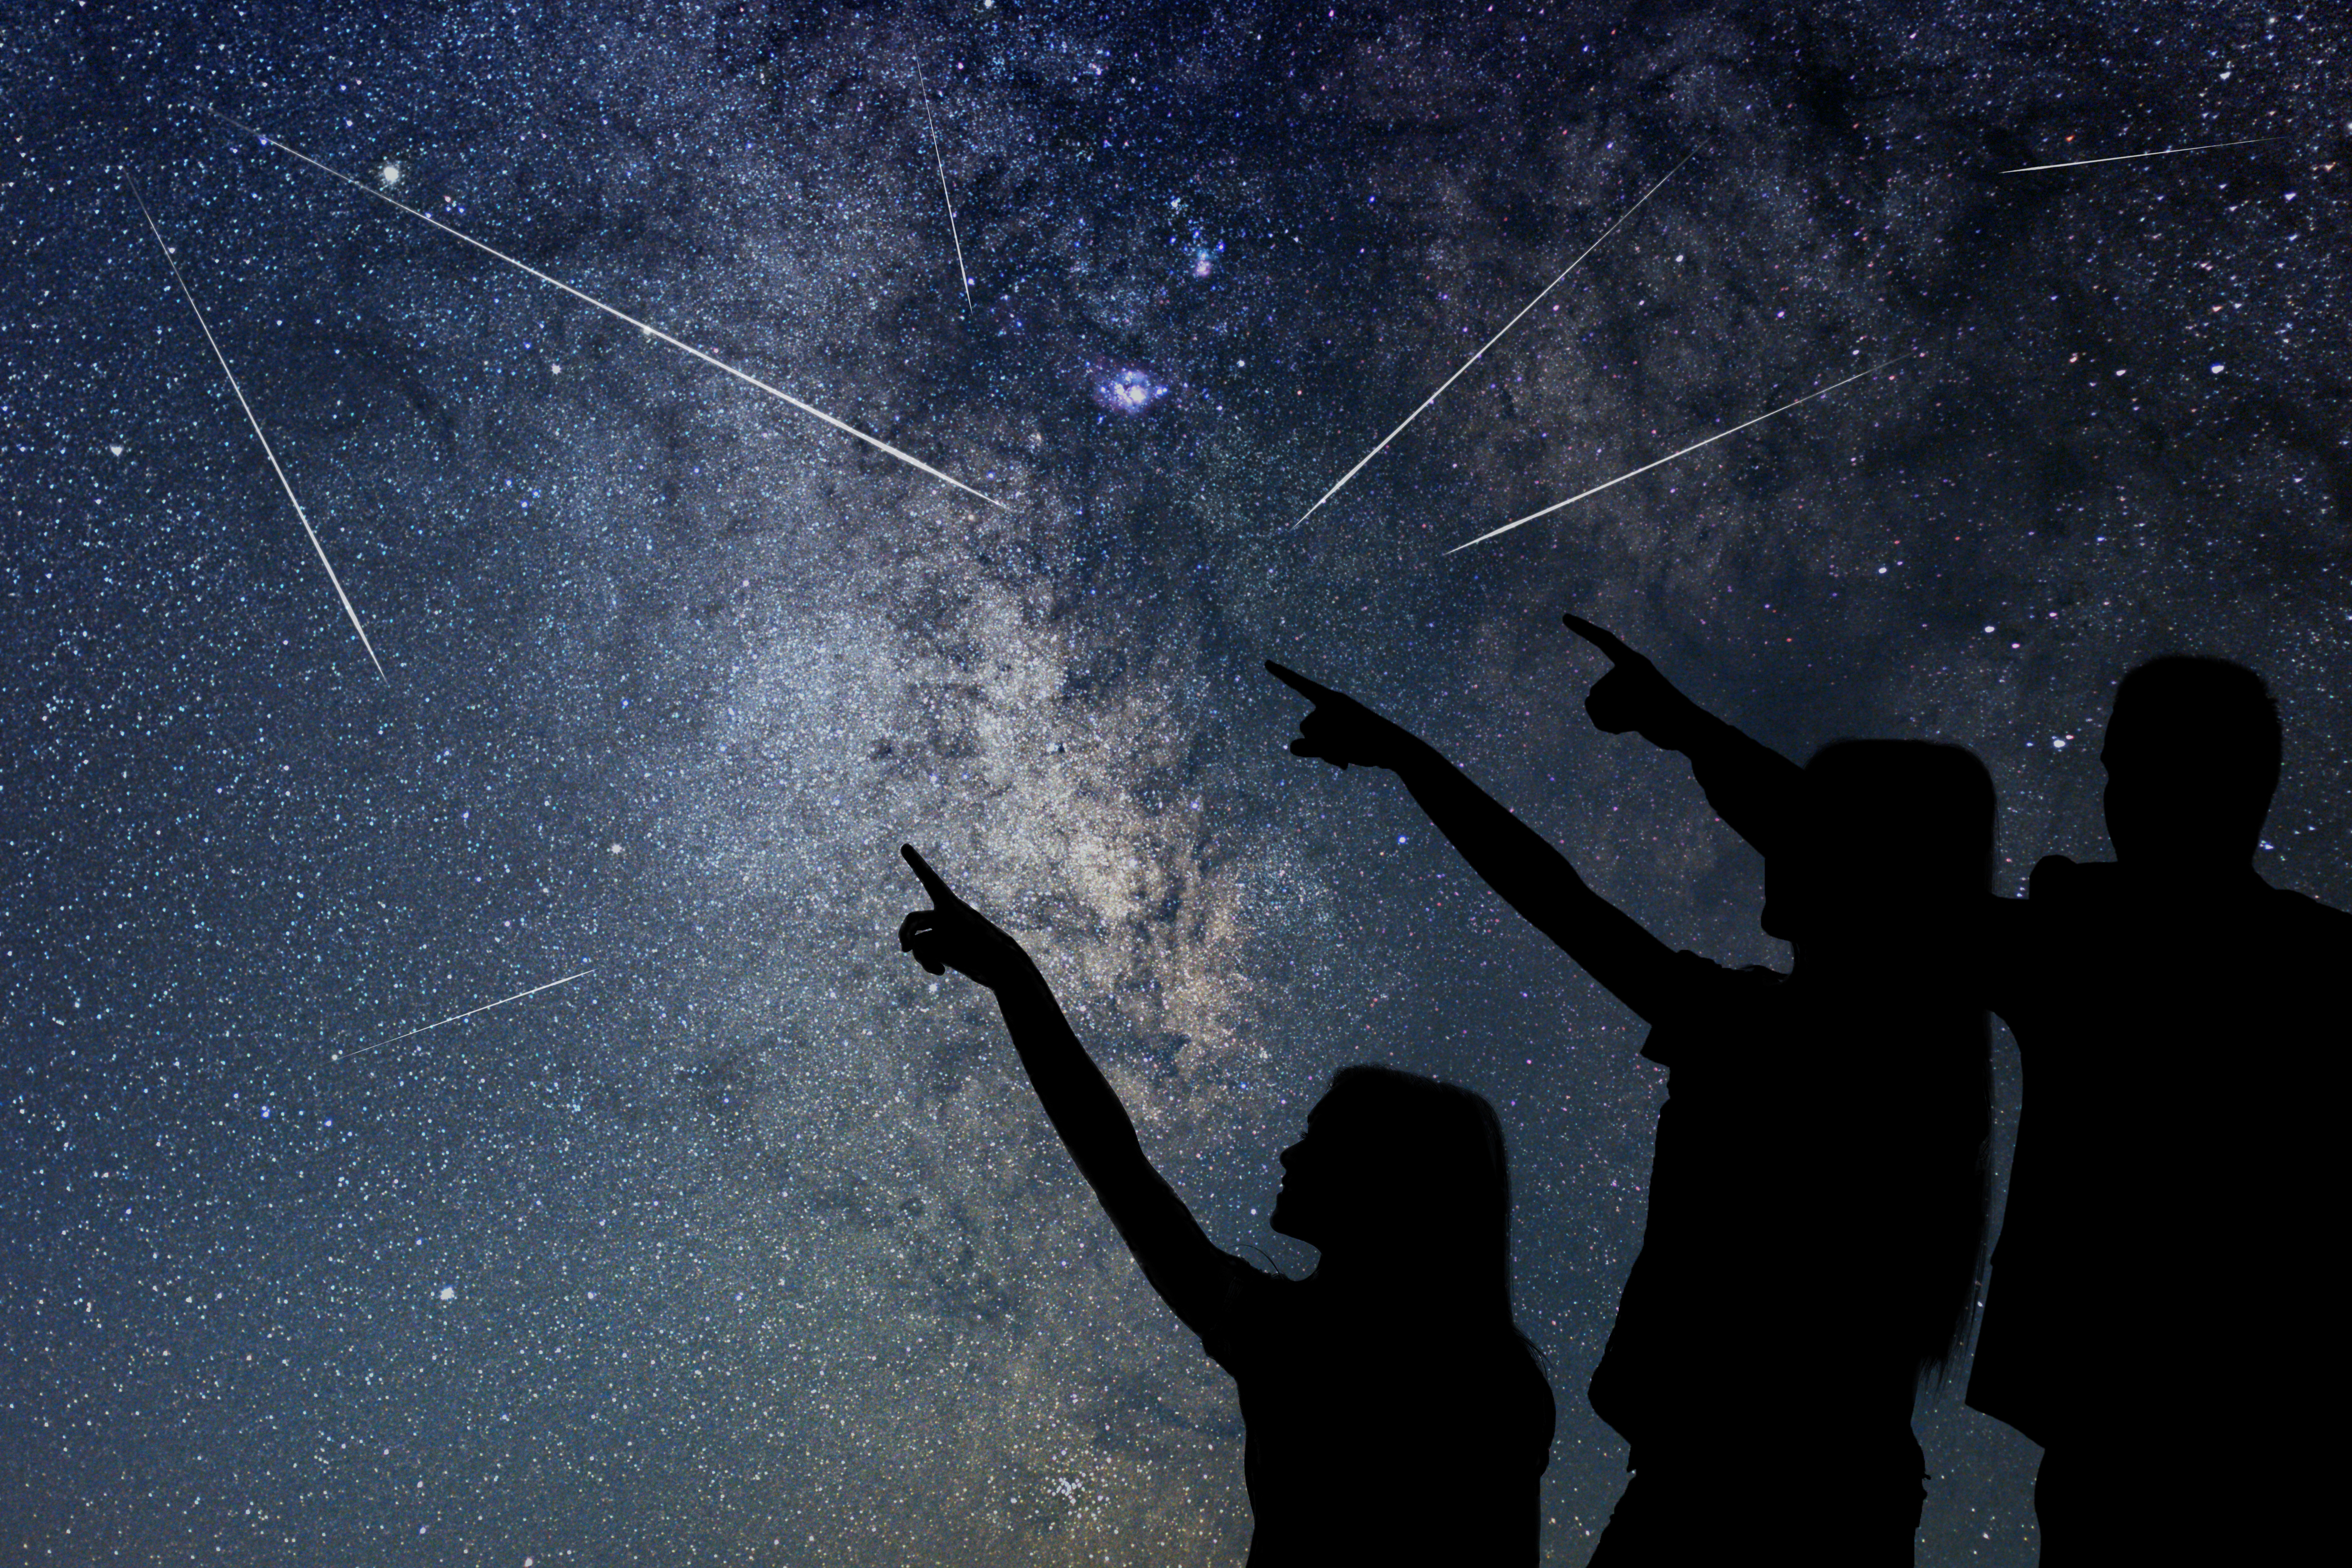 FILE - Snowbasin Resort will host a night of stargazing during the annual Perseid meteor shower on Friday, Aug. 10.